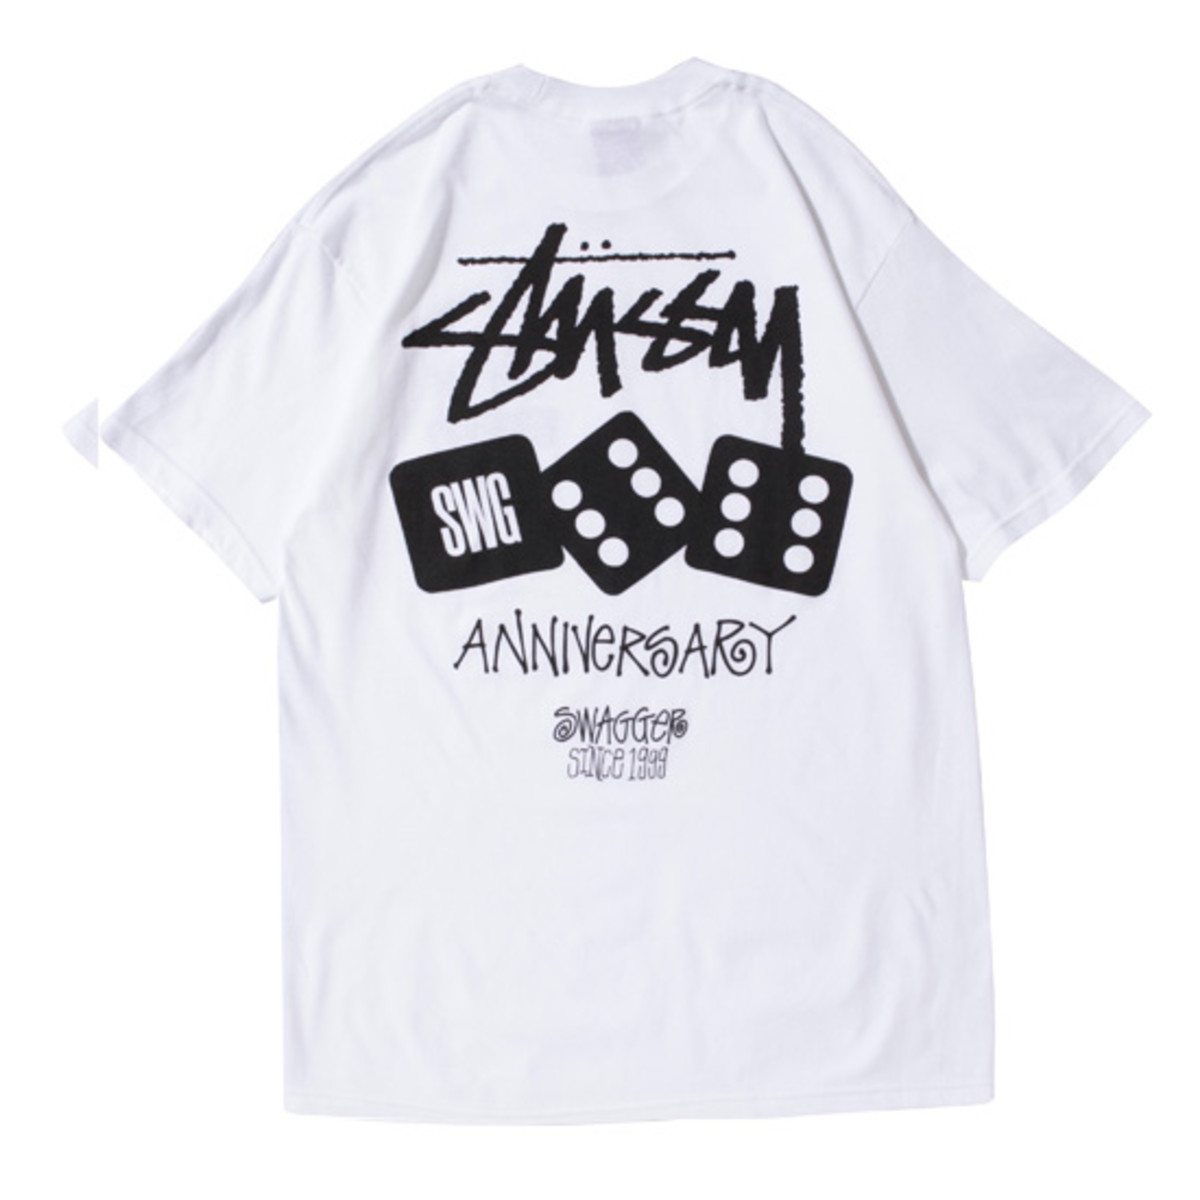 swagger-stussy-new-era-12th-anniversary-dice-t-shirt-04